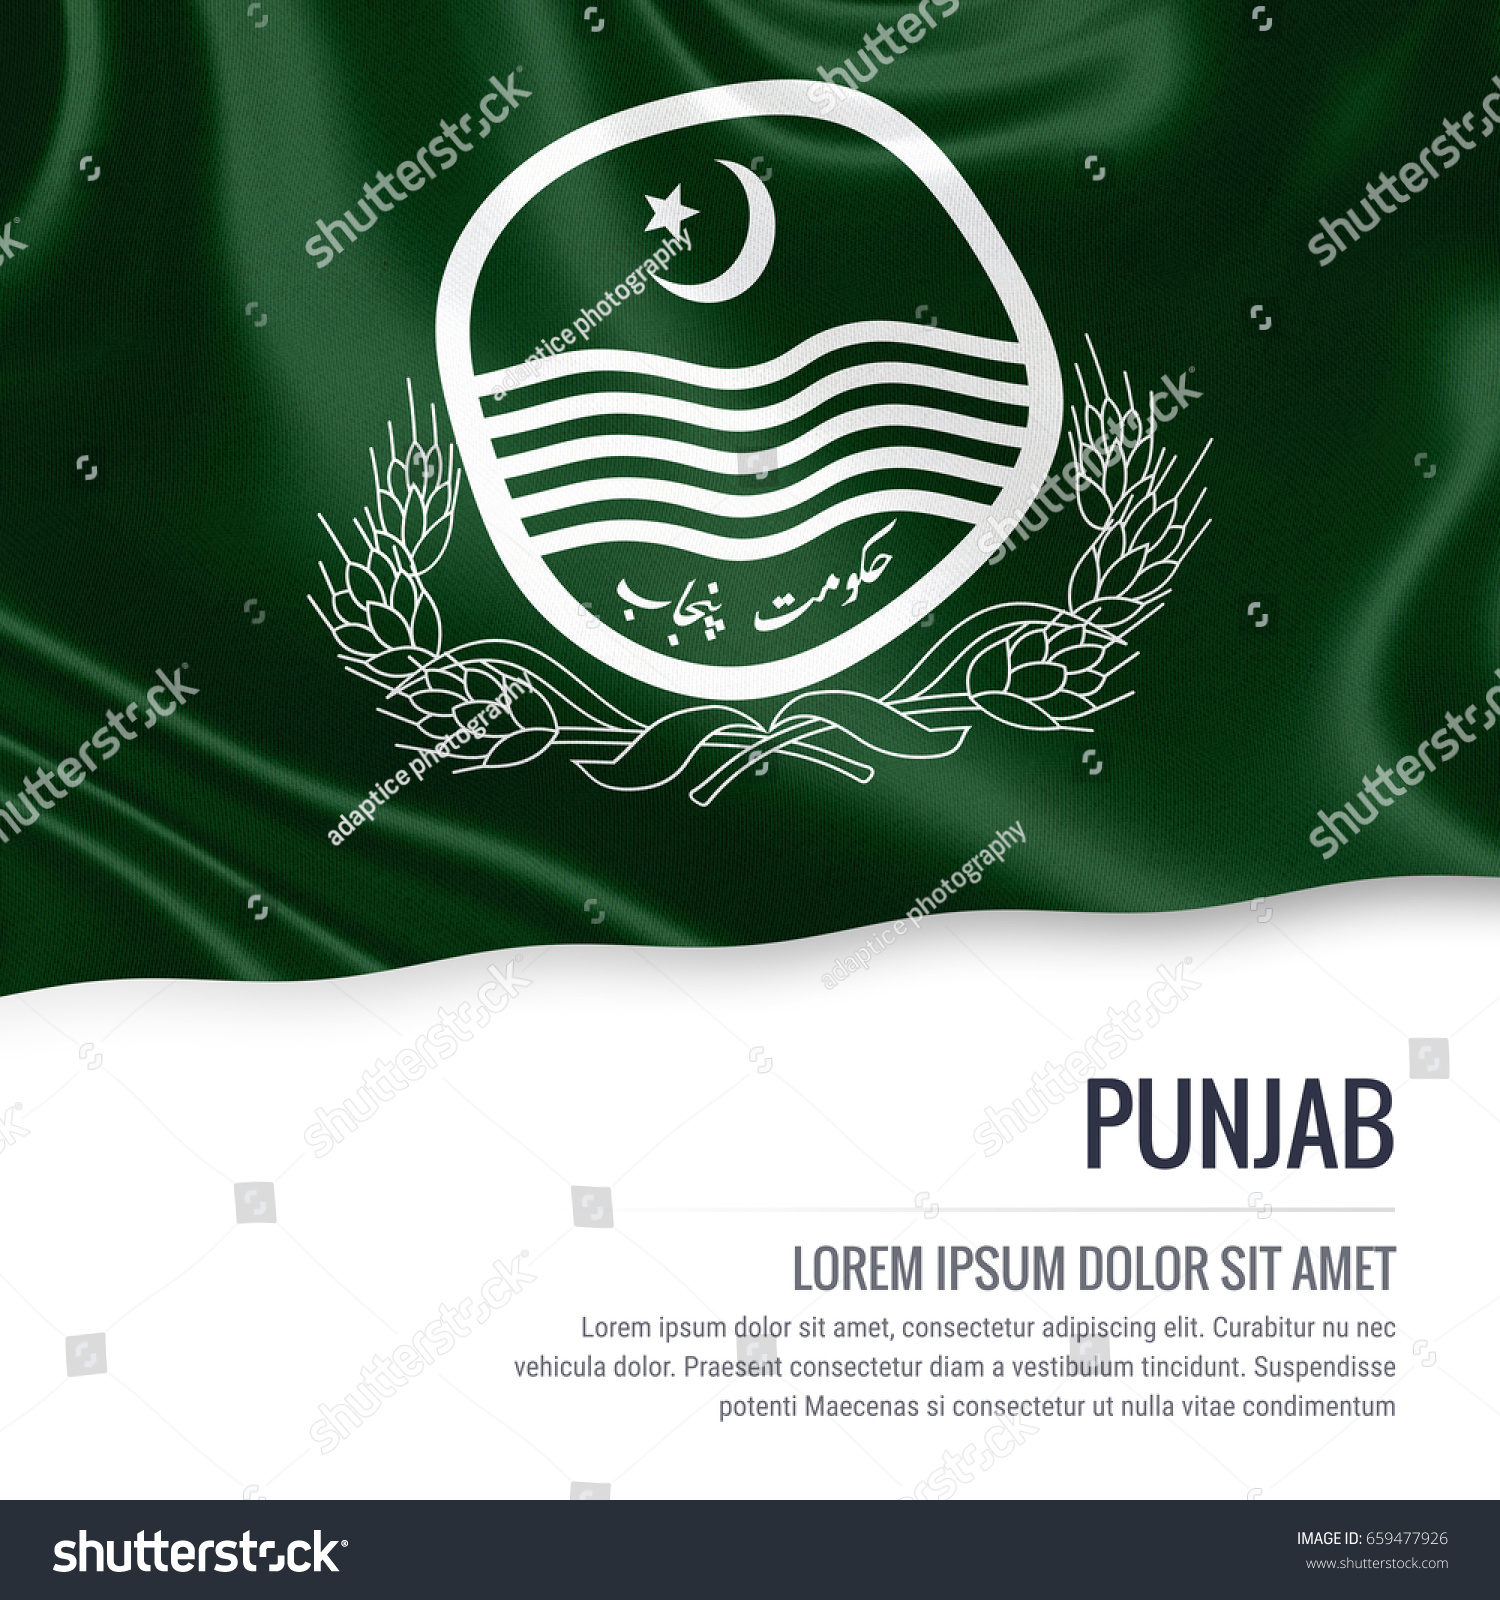 Pakistan state punjab flag waving on stock illustration 659477926 pakistan state punjab flag waving on an isolated white background state name and the text buycottarizona Gallery